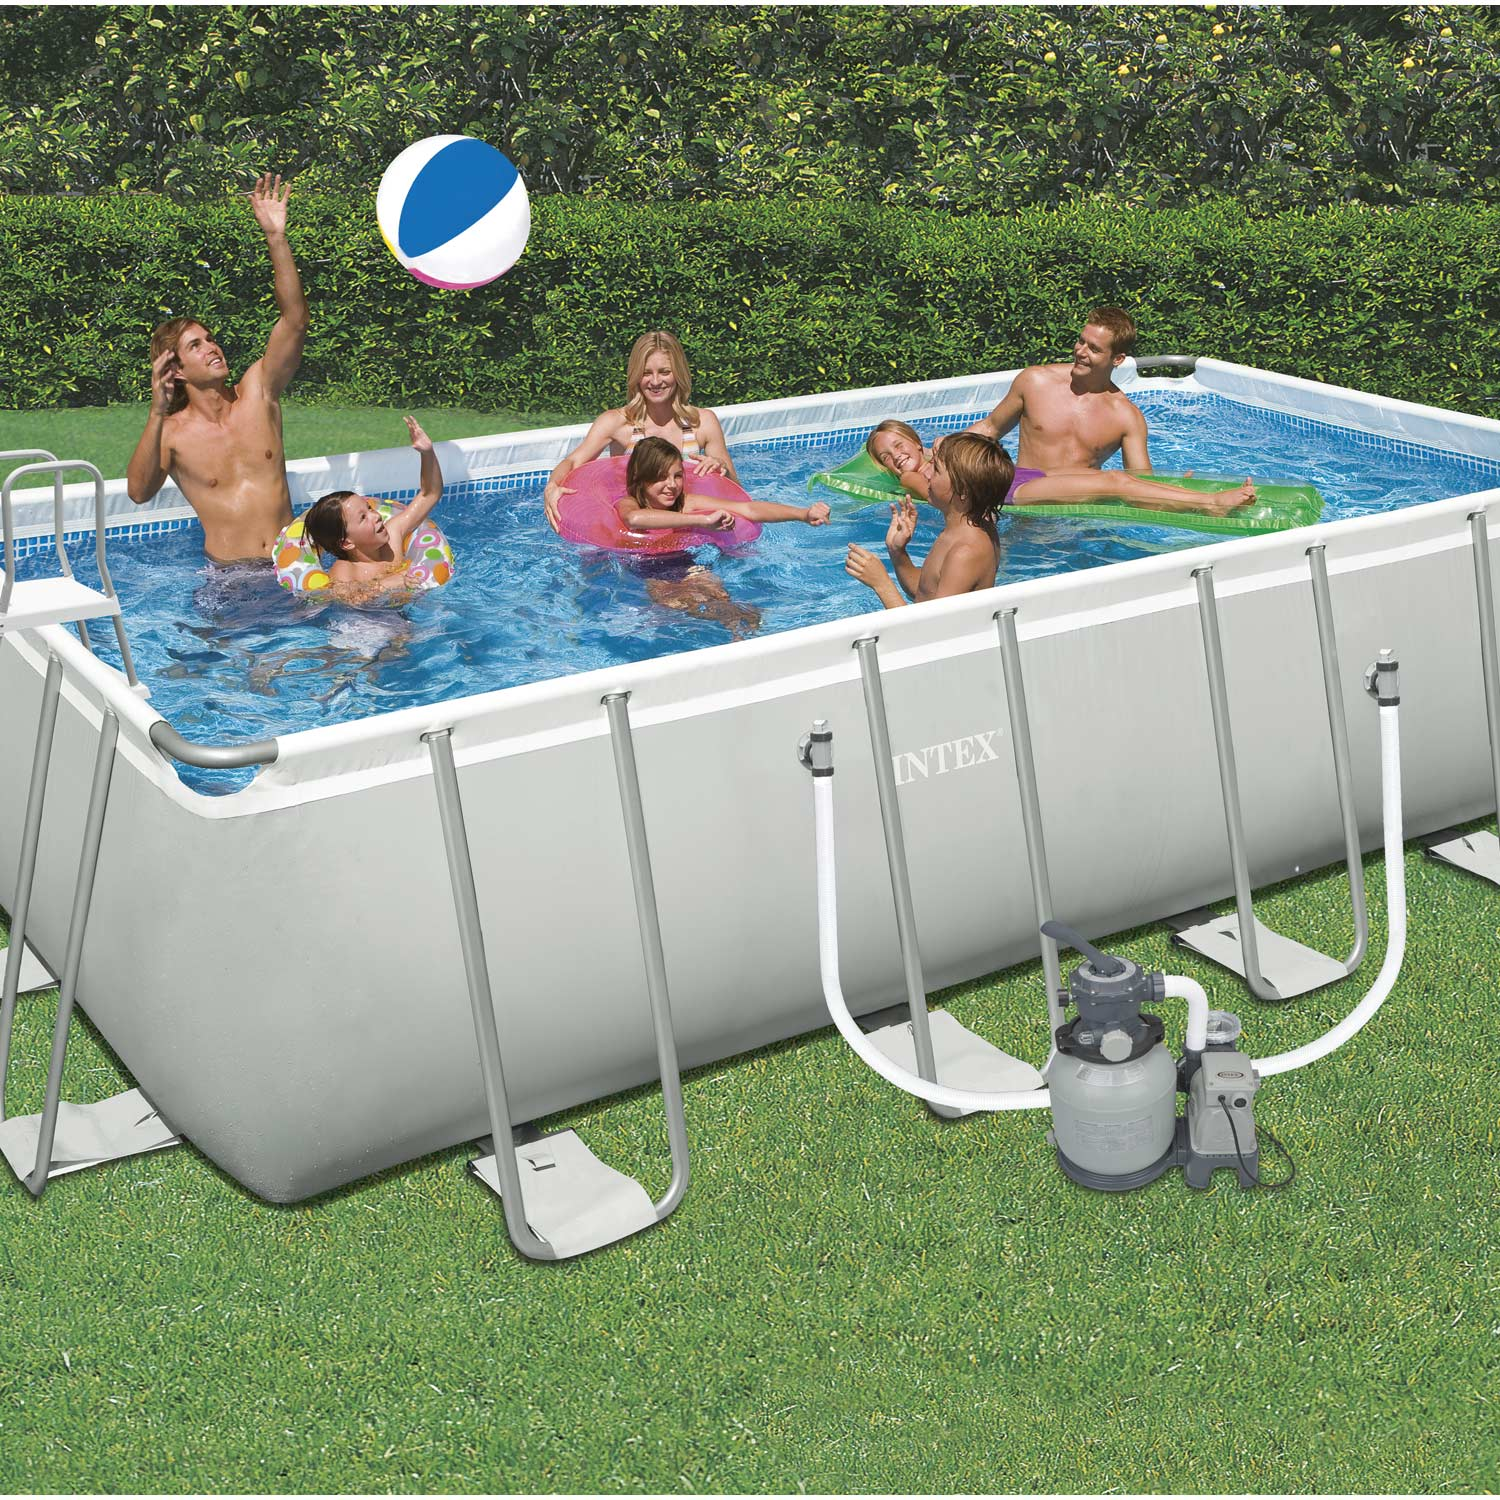 Piscine hors sol autoportante tubulaire intex l x l for Piscine intex hors sol rectangulaire